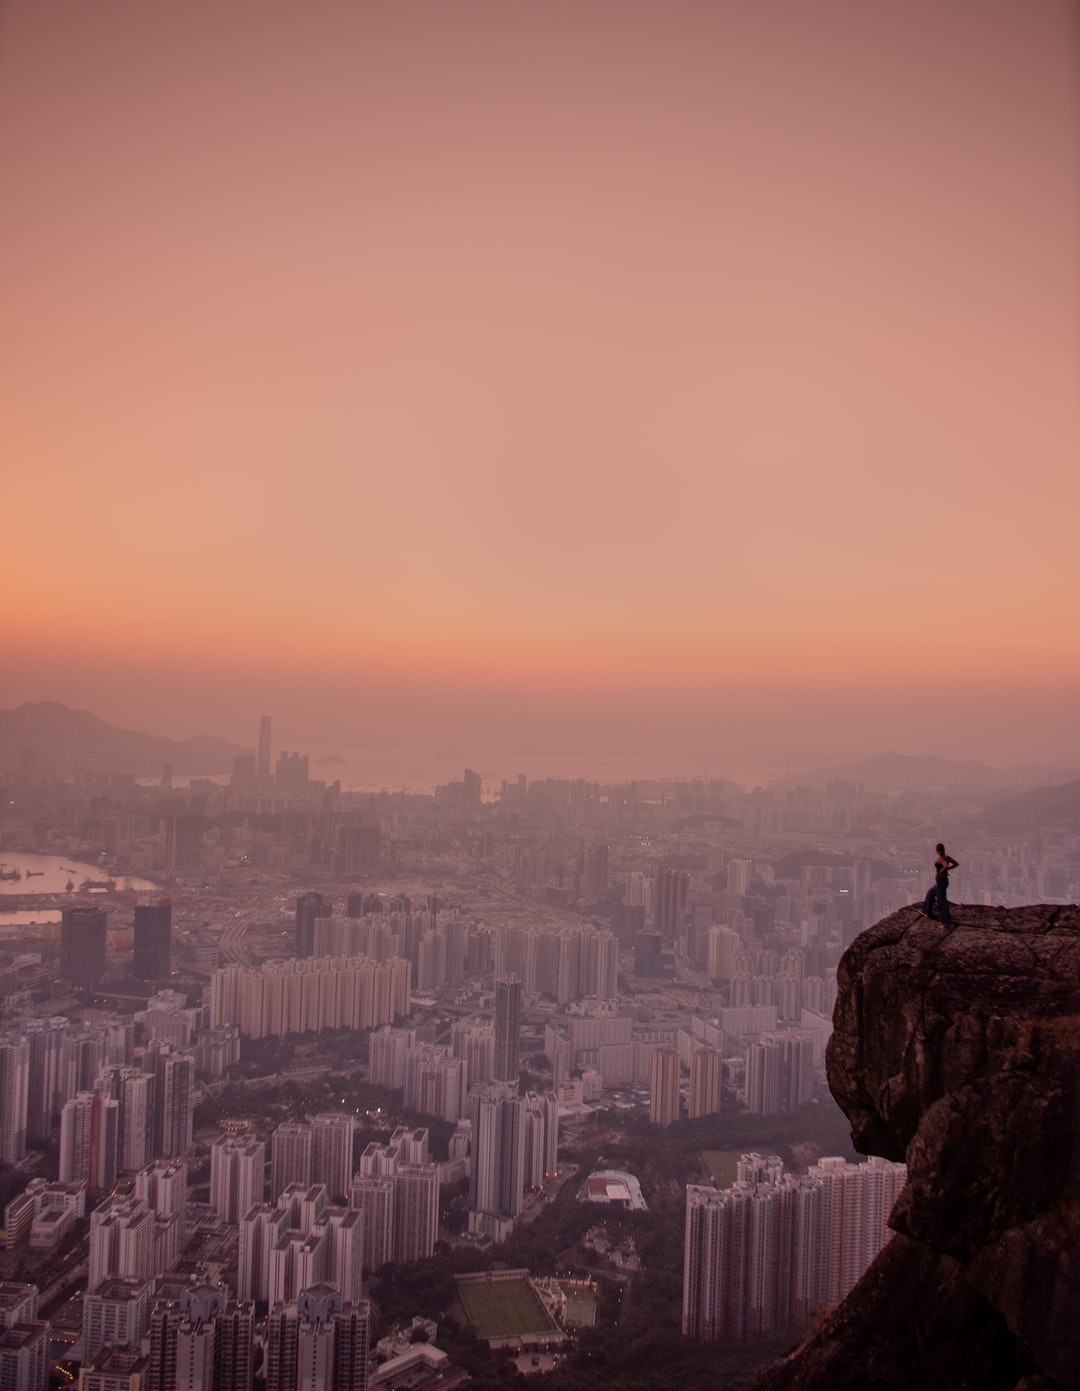 Standing on the suicide cliff in HK